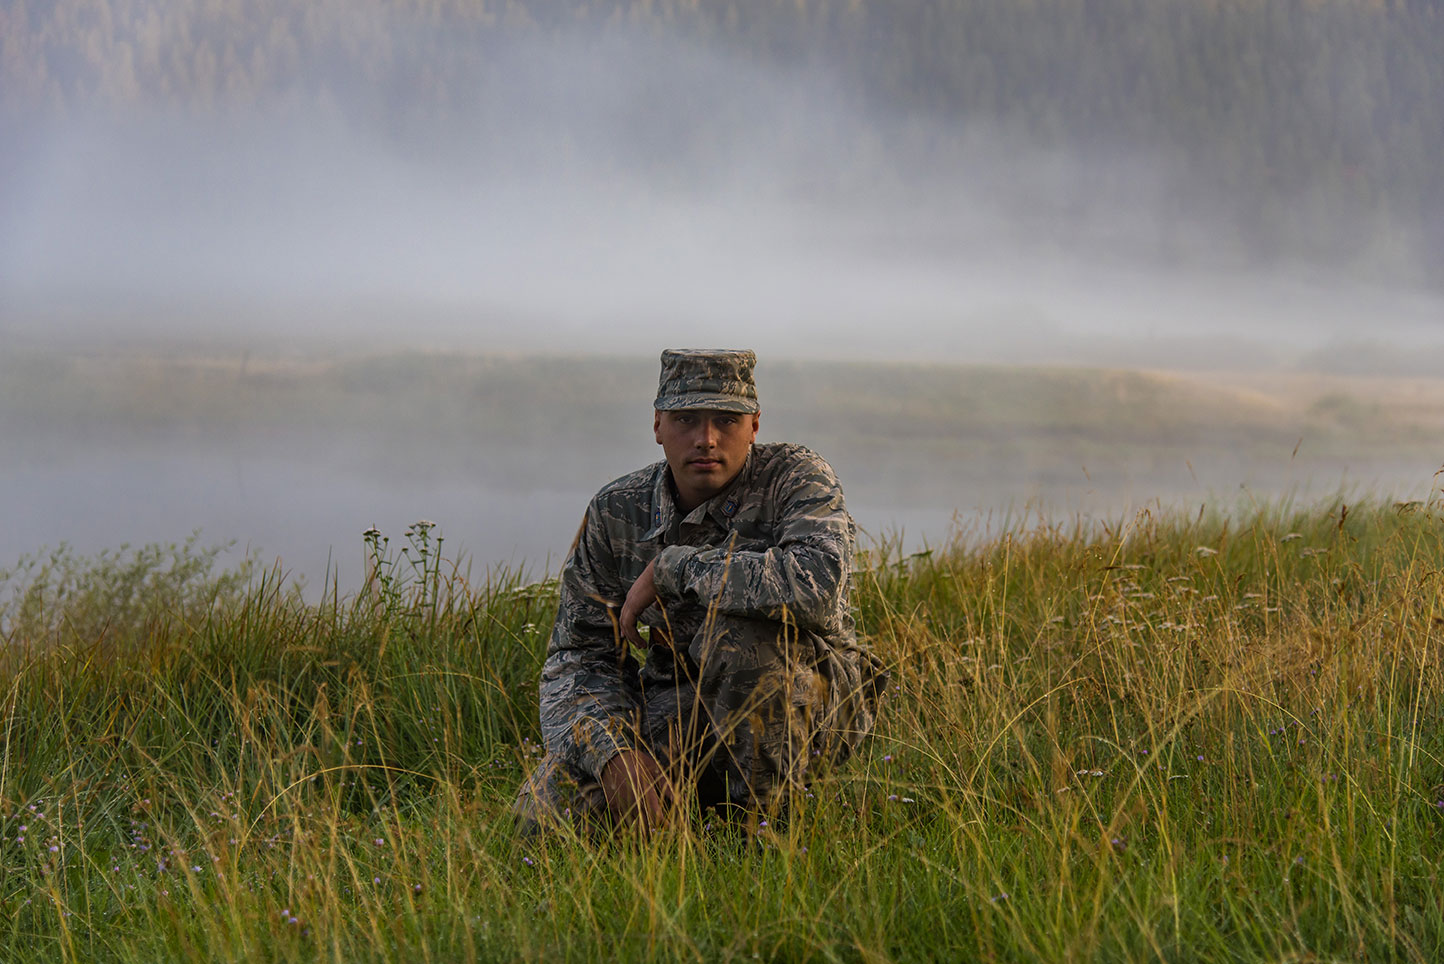 Portrait Photography, Military, Squaw Valley, Lake Tahoe, Fog, Portrait Lifestyle Photographer, Daniel Britton